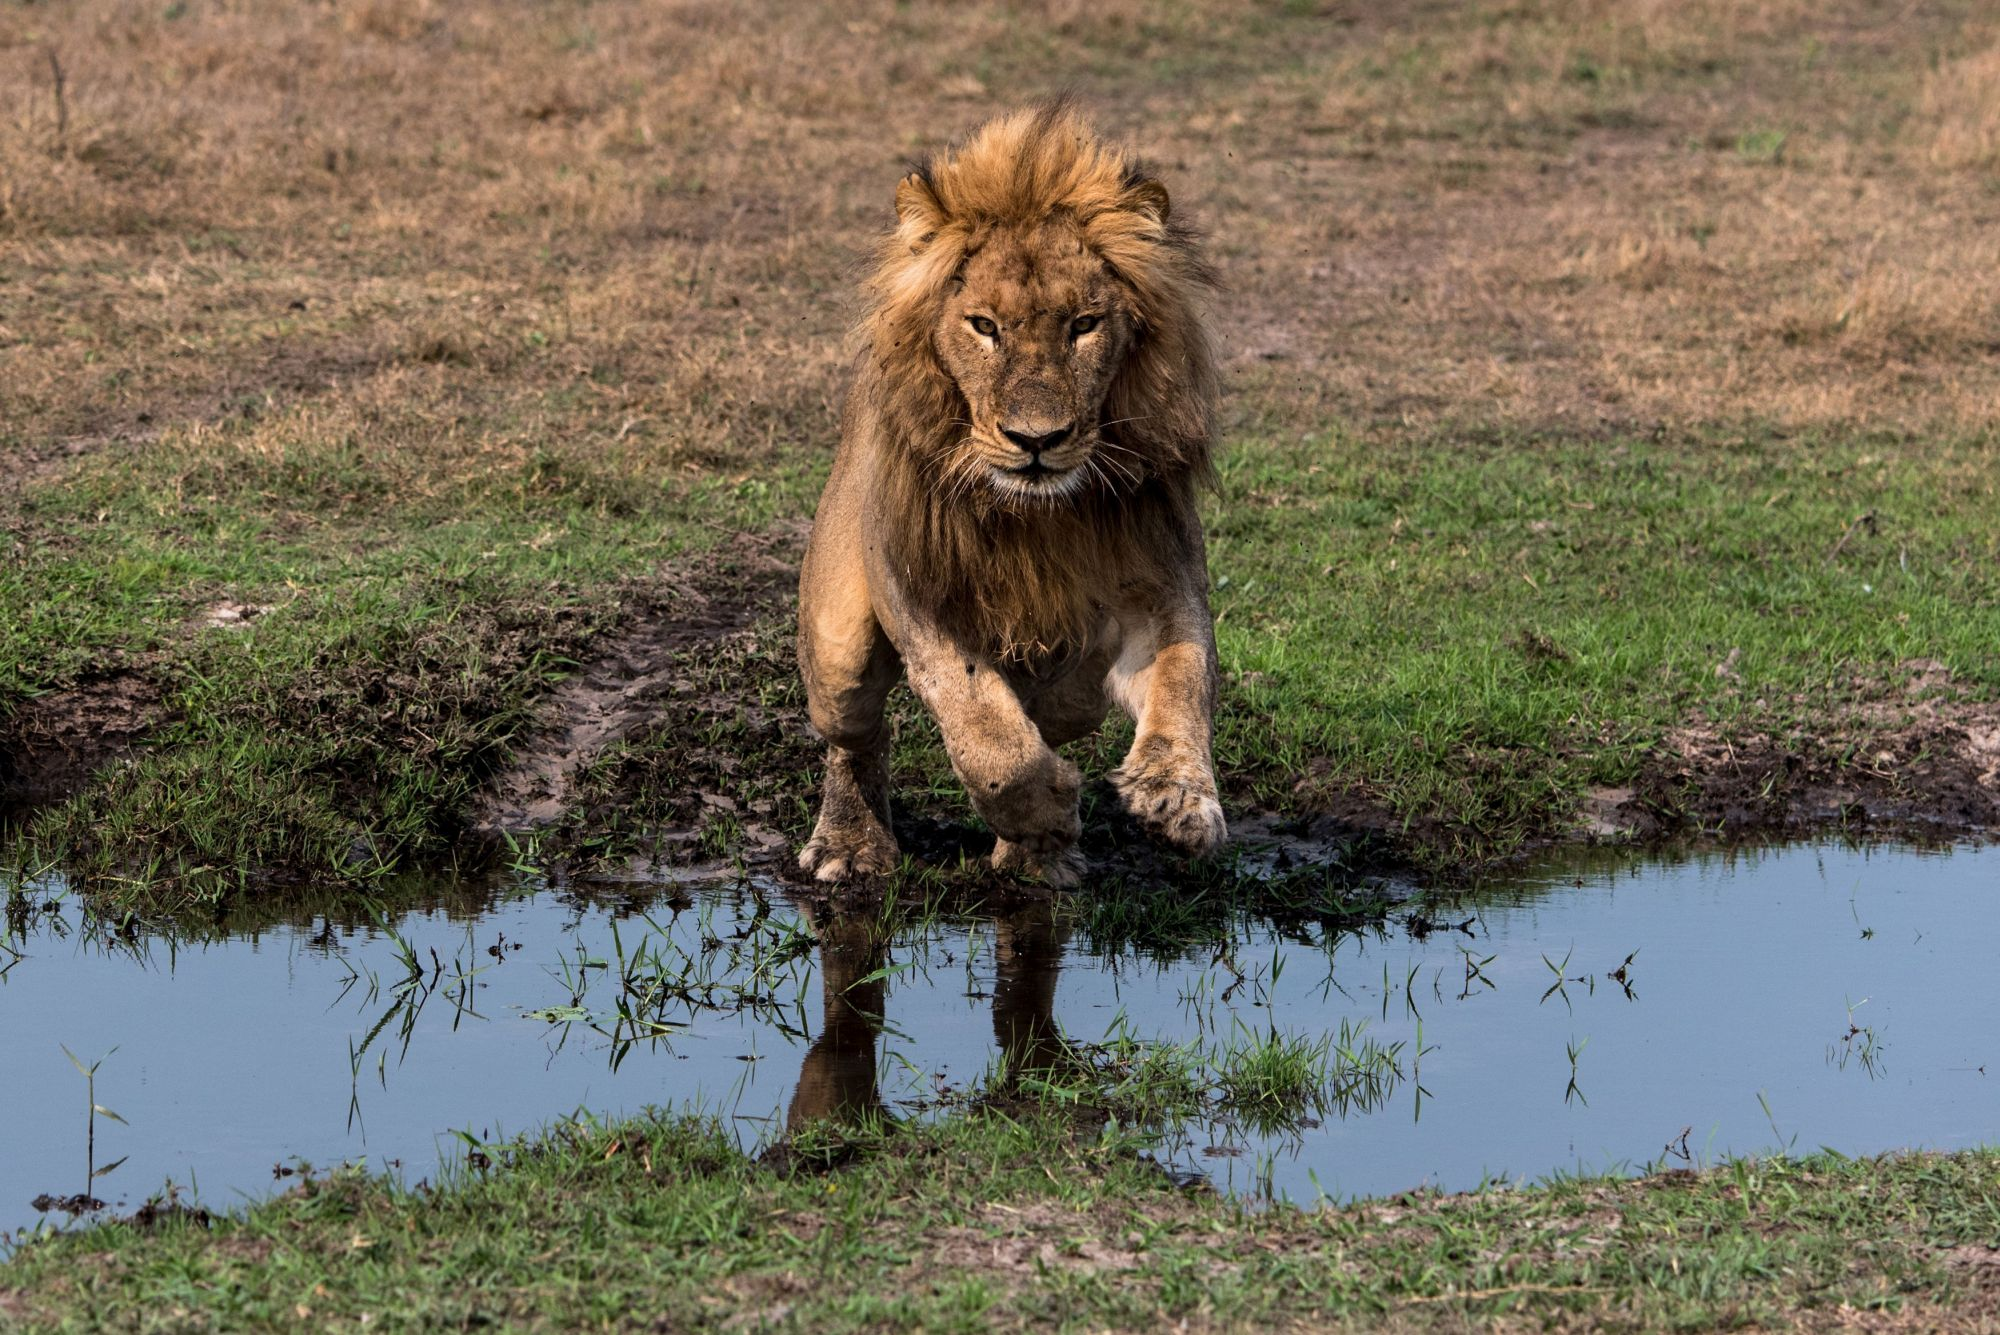 A lion leaping across a river